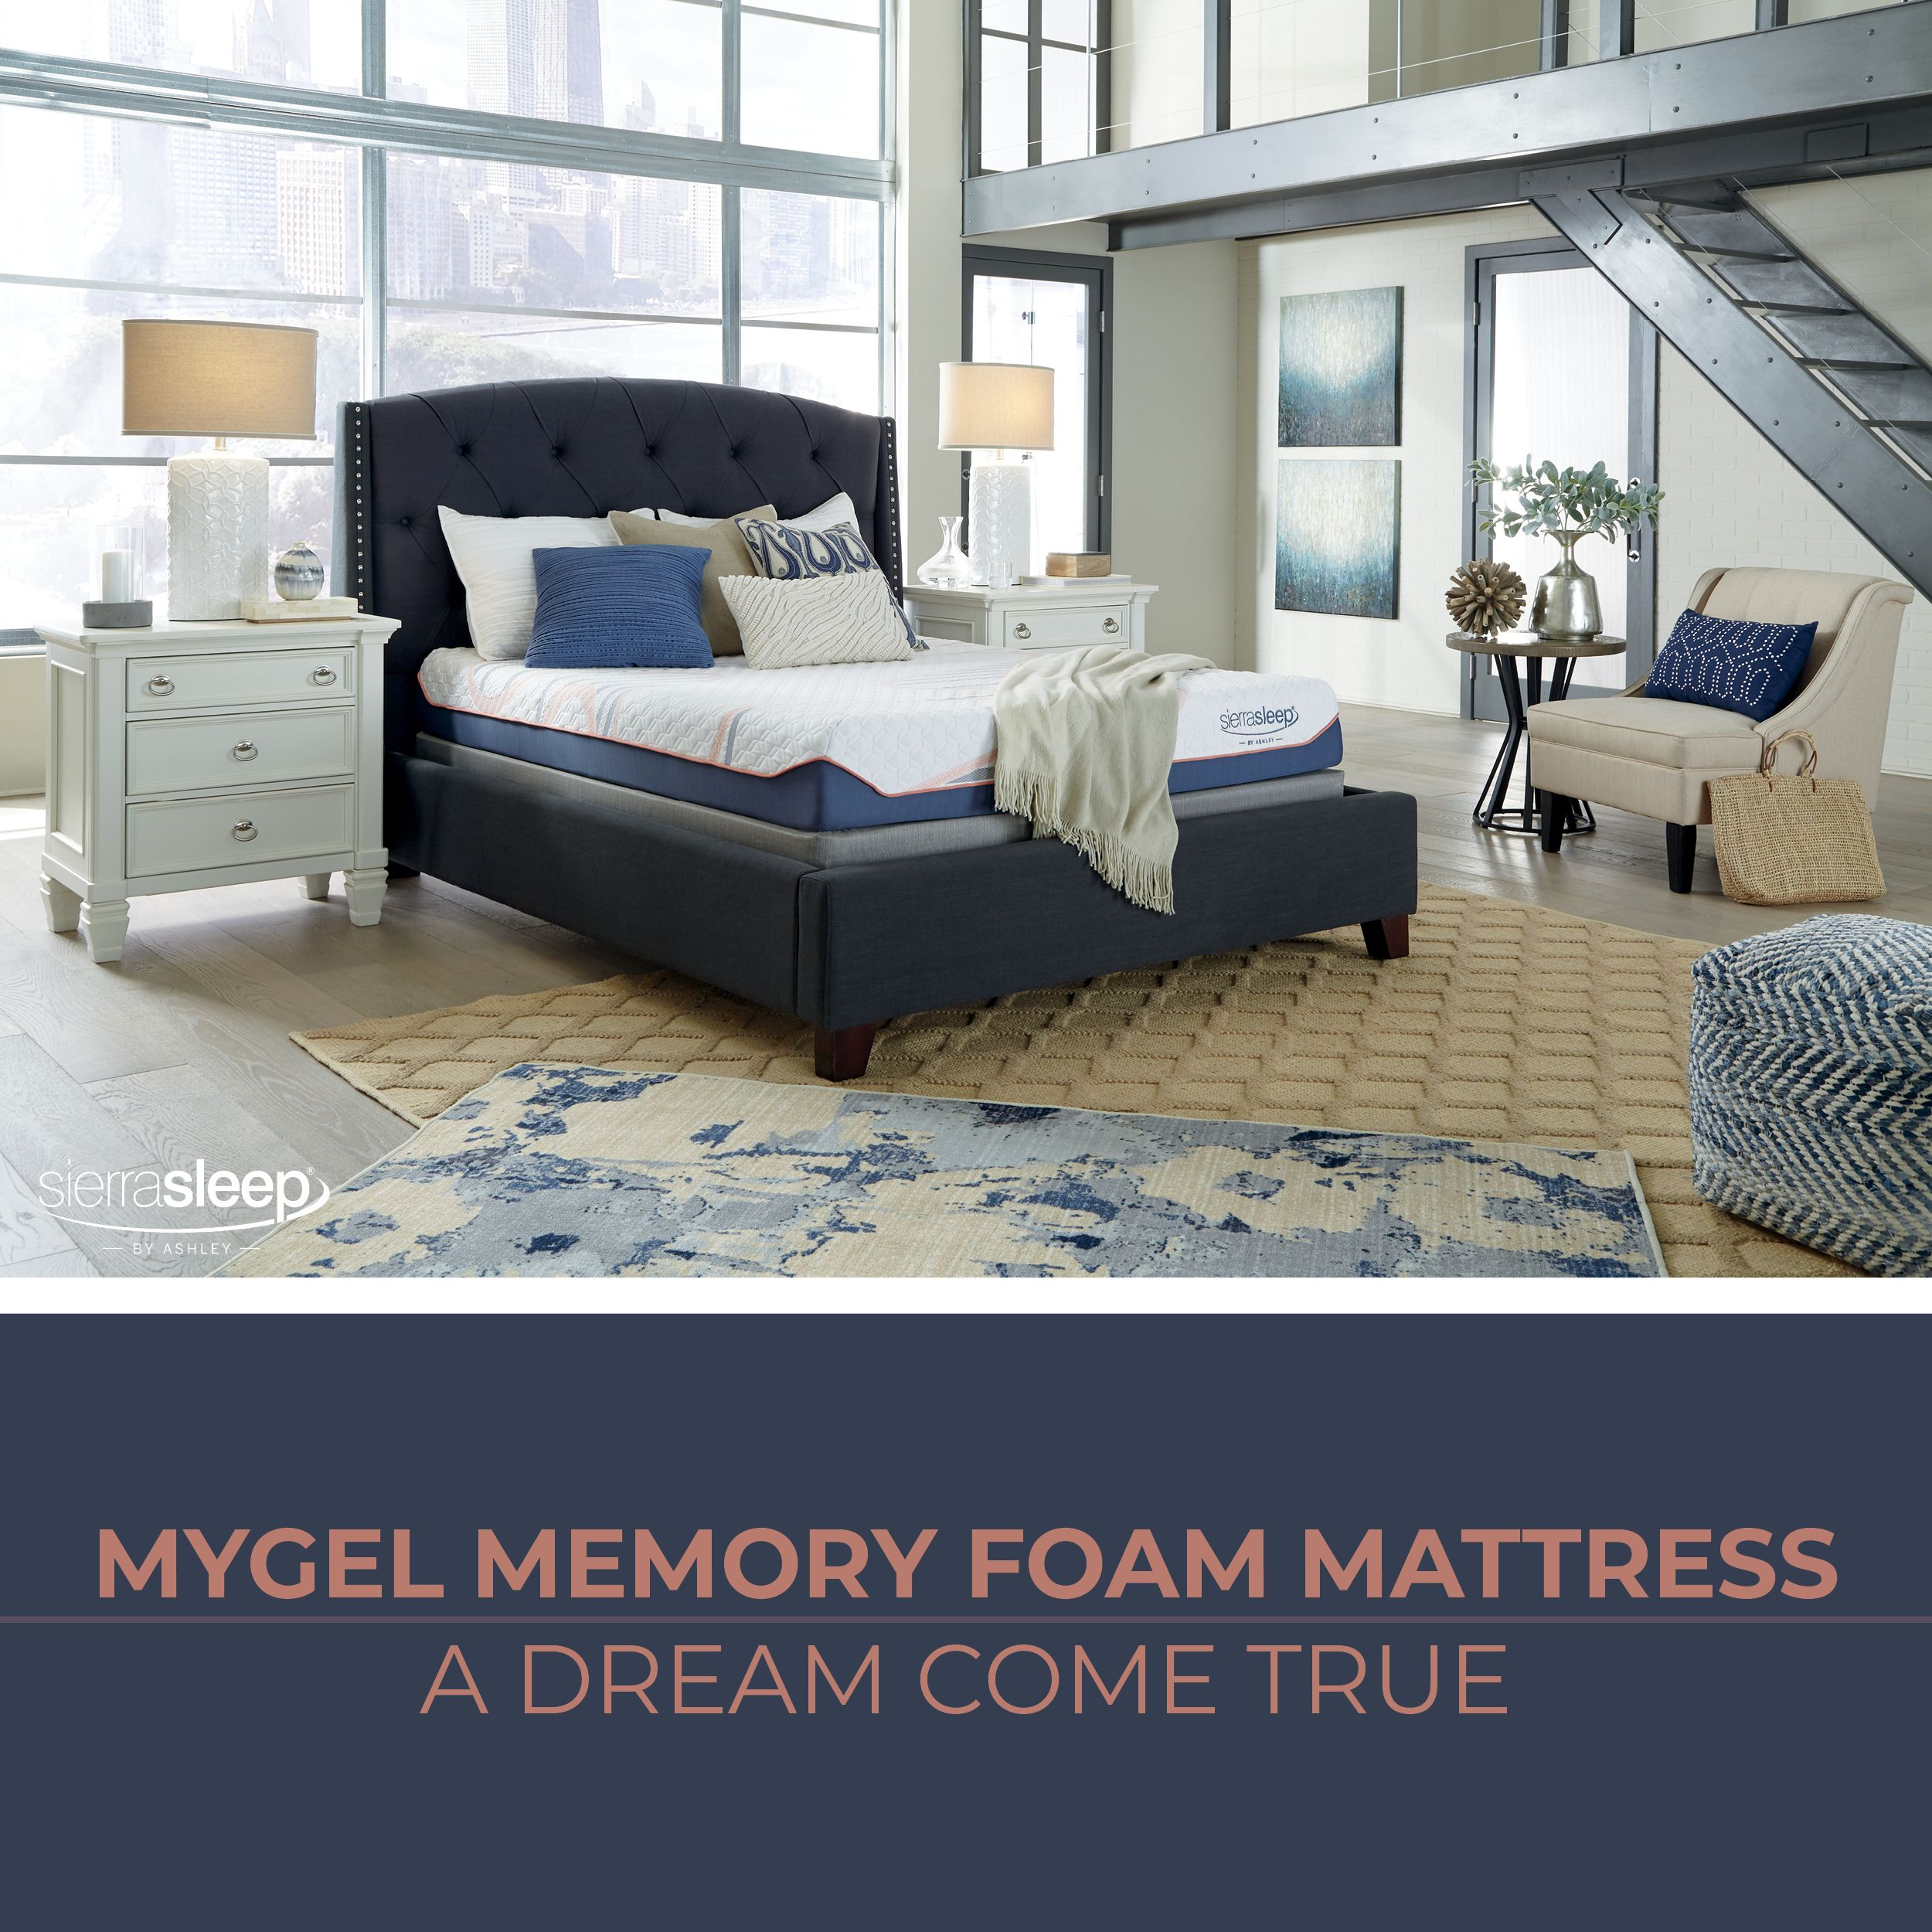 mygel memory foam firm white sierra sleep mattress by ashley